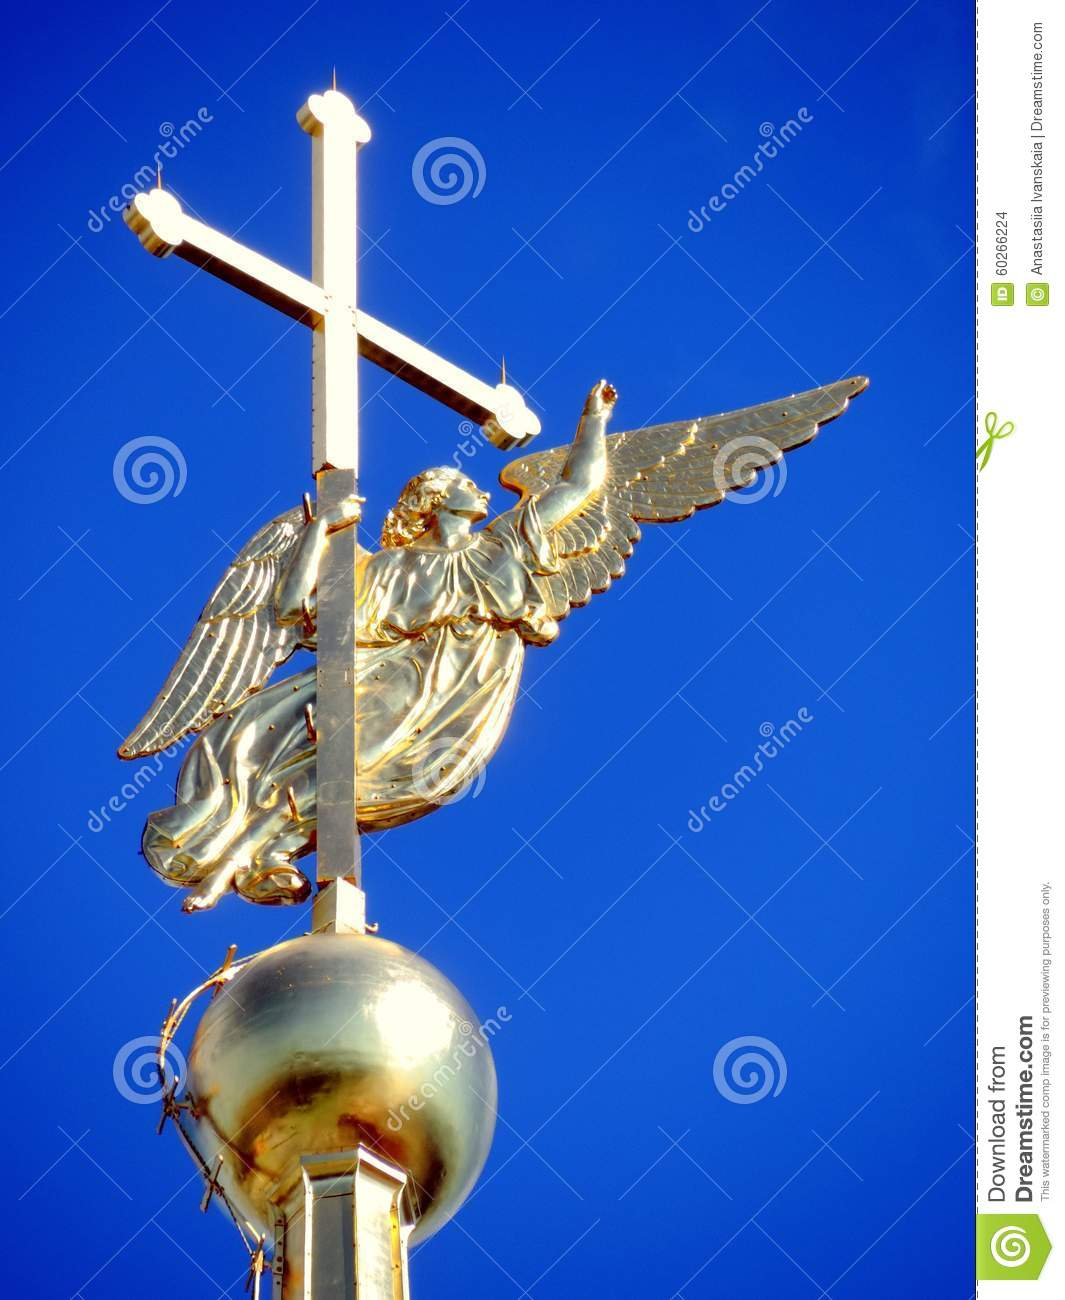 Download Angel Of Peter And Paul Cathedral In Saint-Petersburg Stock Photo - Image of orthodox, nobody: 60266224